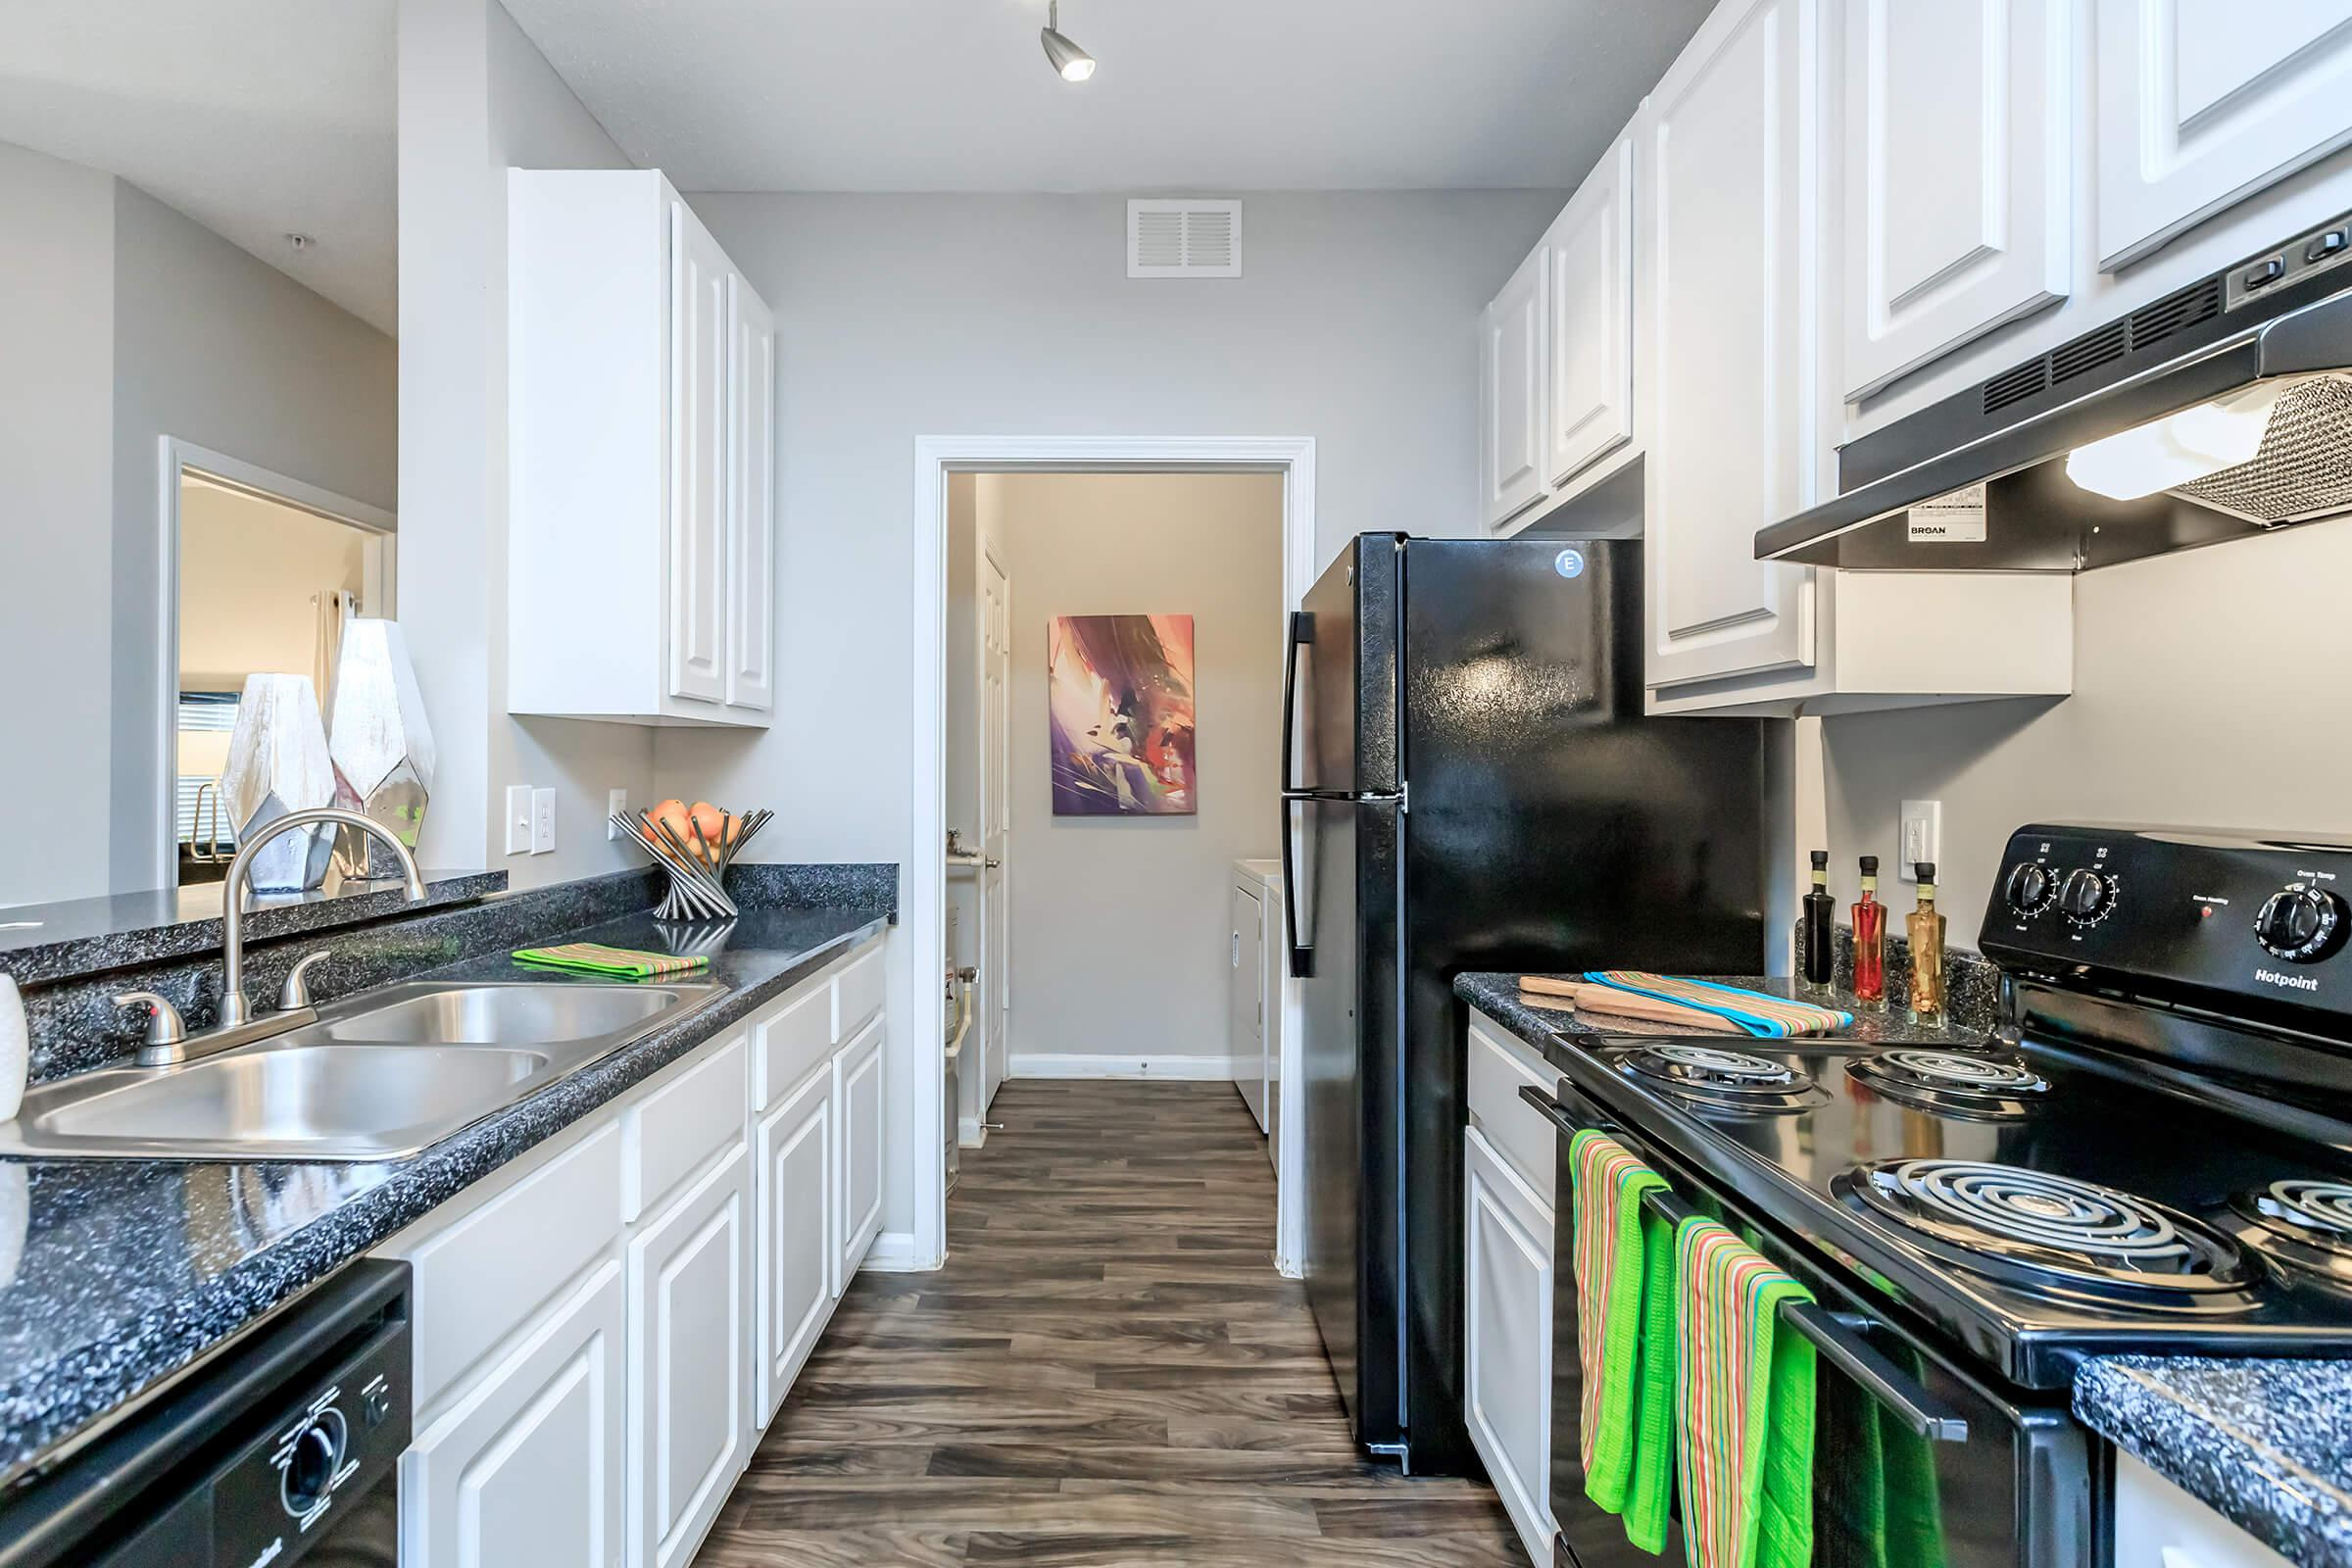 a modern kitchen with stainless steel appliances